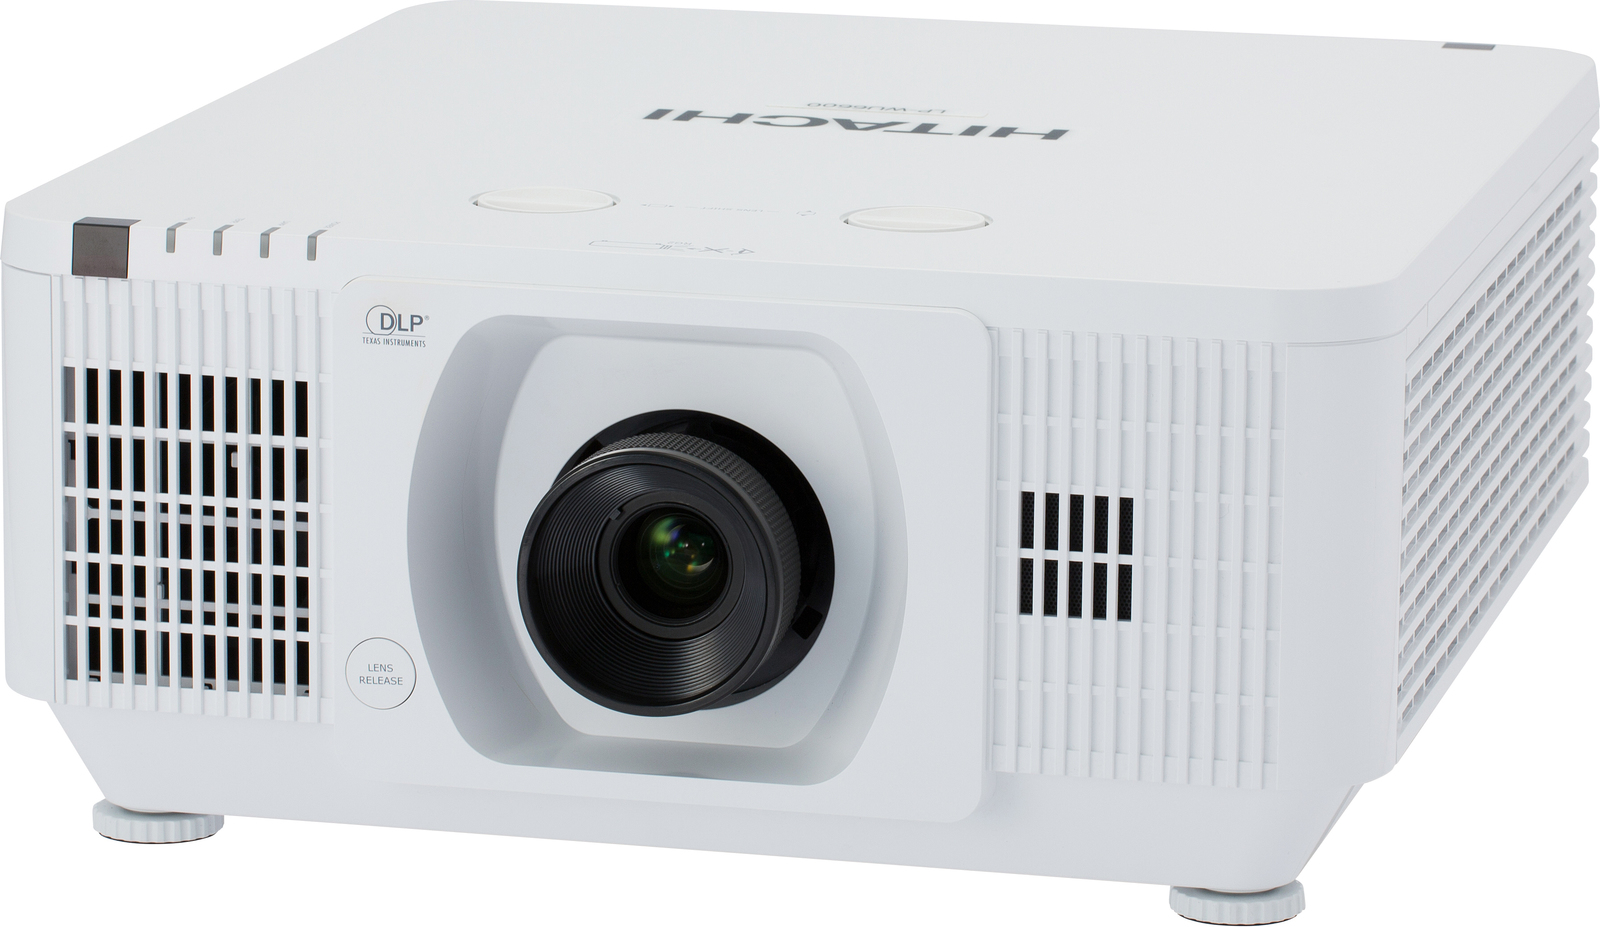 HITACHI LP WU6600 SD PROJECTOR